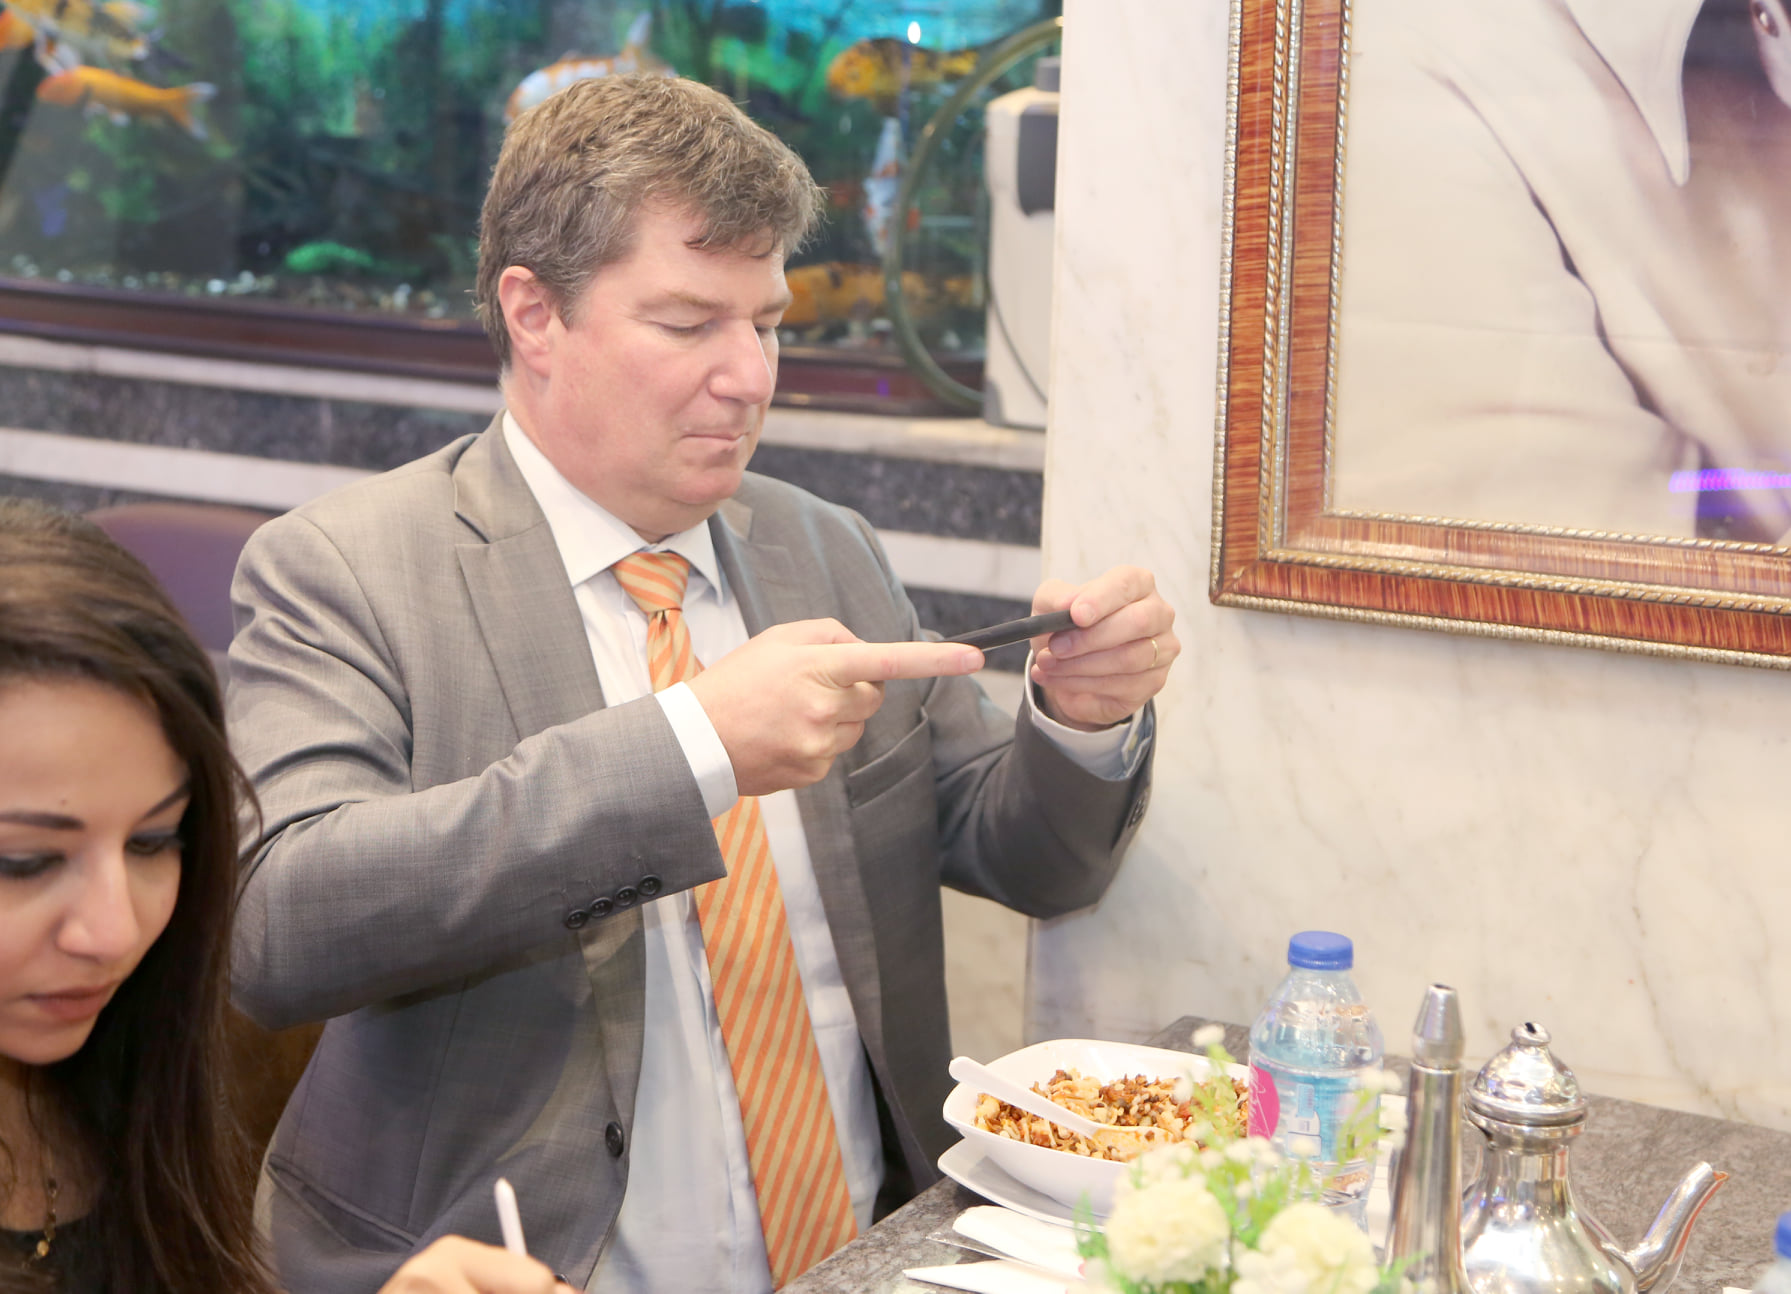 The ambassador takes a picture of the Koshary dish